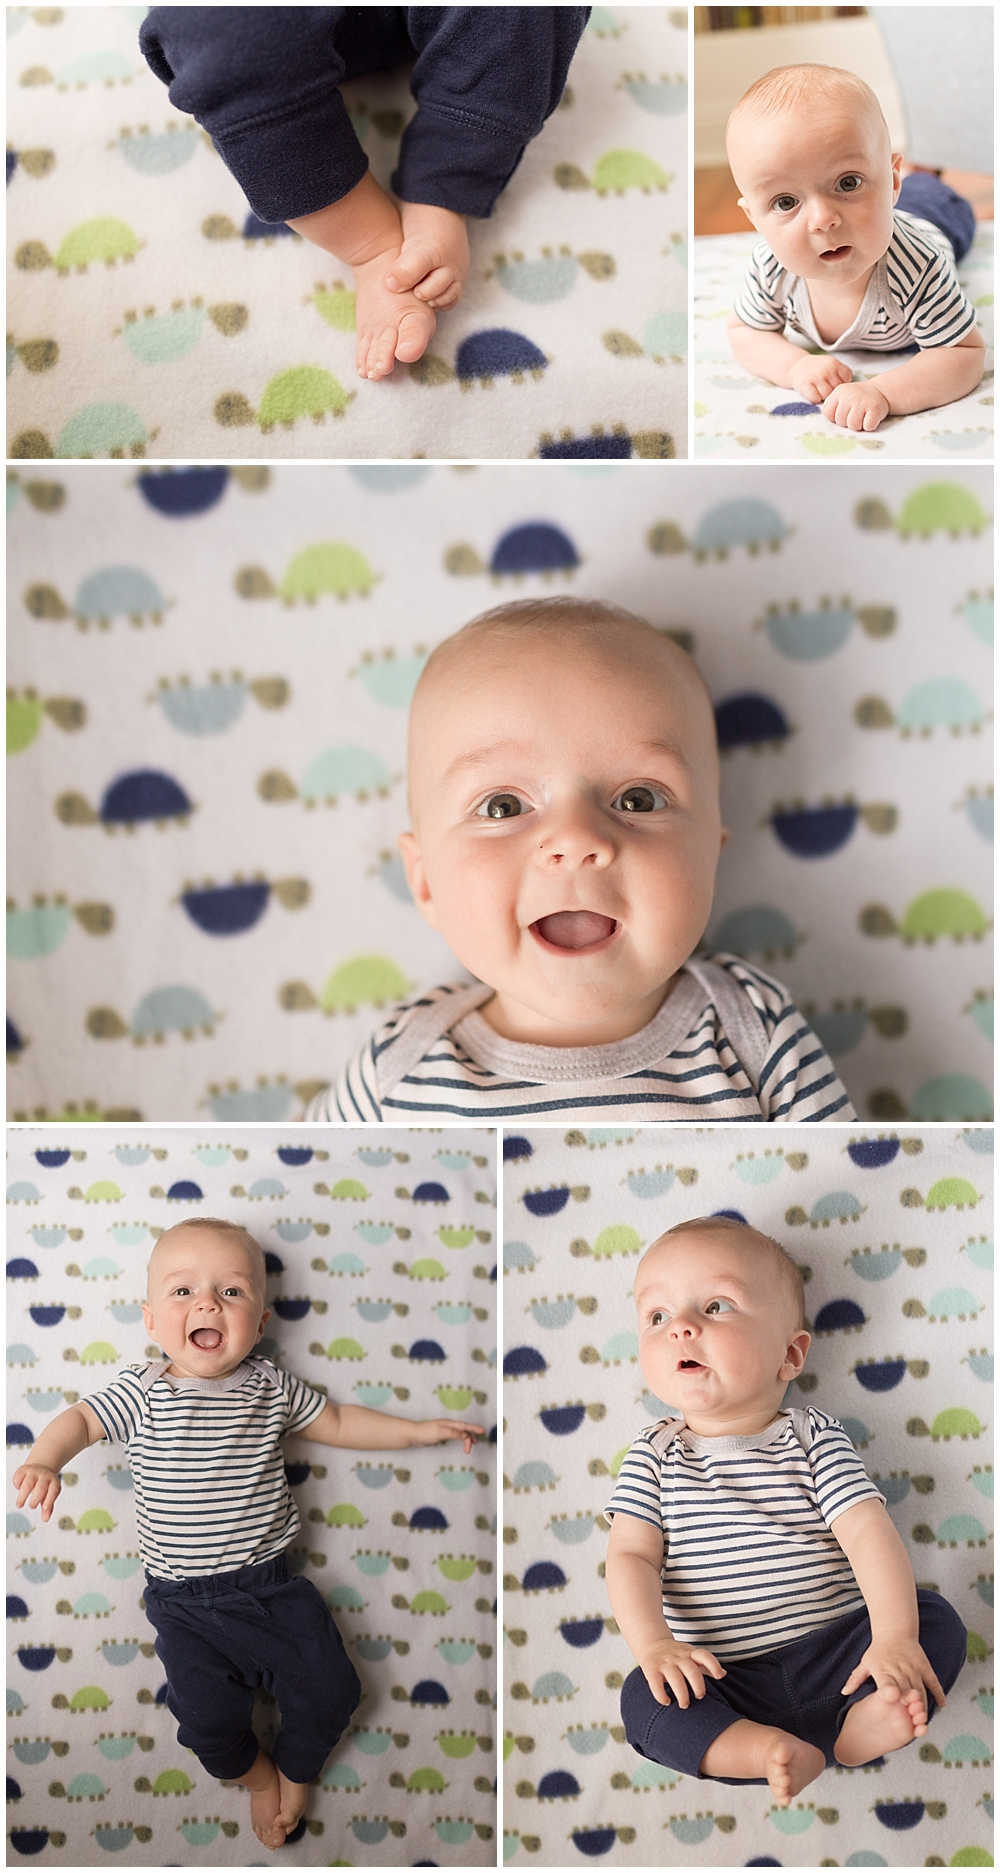 four month old baby boy - baby photographer in Ocean Springs, MS